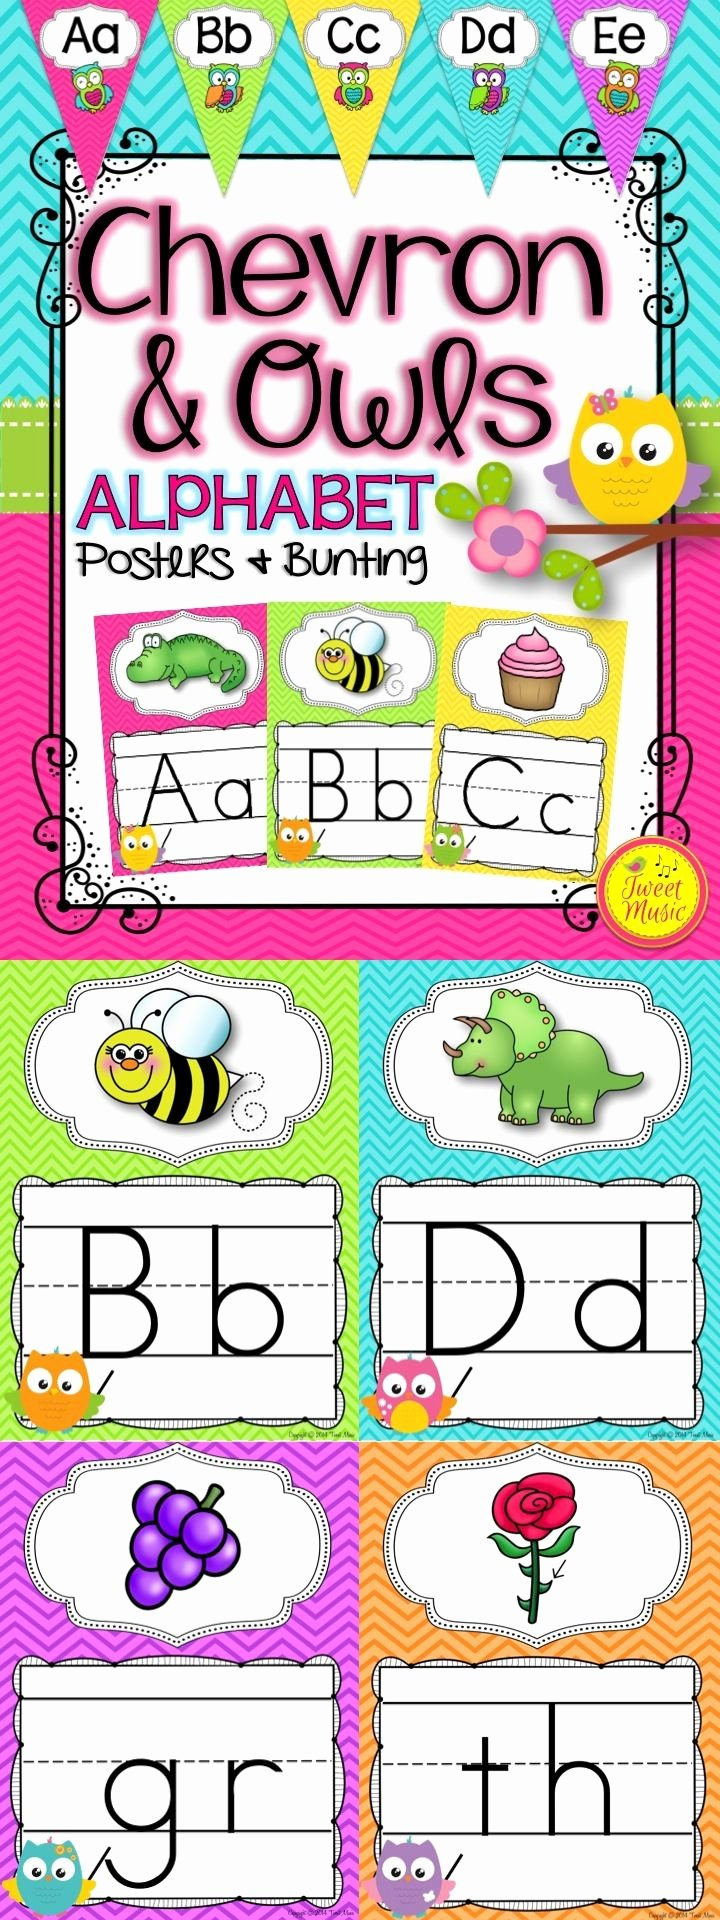 Alphabet Poster for Classroom Beautiful Alphabet Posters and Bunting In An Owls and Chevron Decor